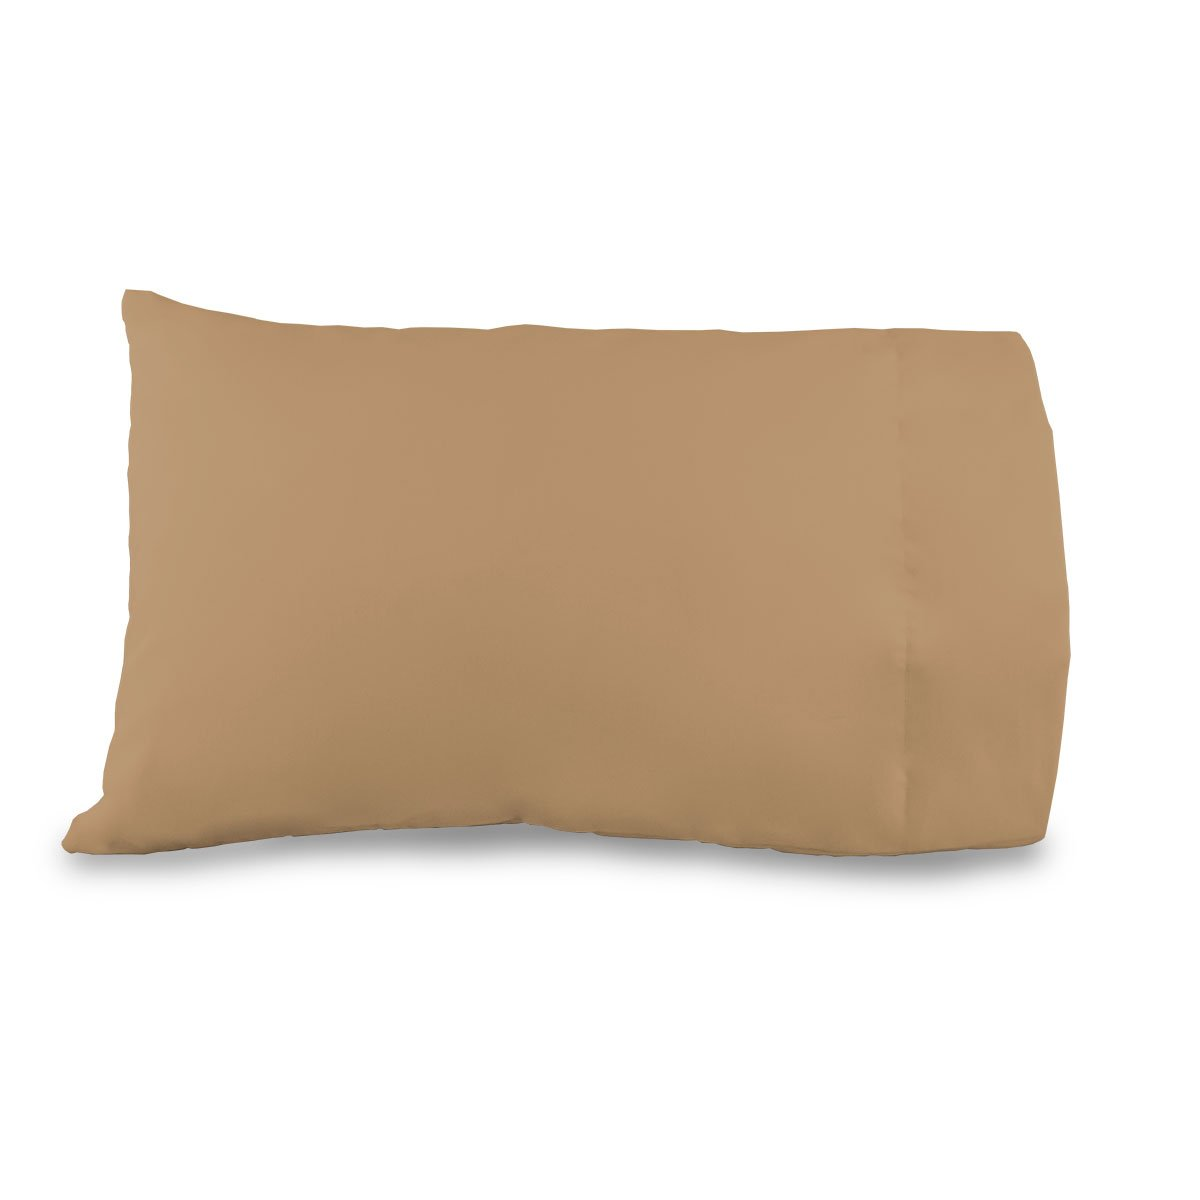 12x18 Pillowcase Travel/Toddler size 100% cotton Color: Camel Allyson Brooke Inc. 353-73003/12x18 PC Camel